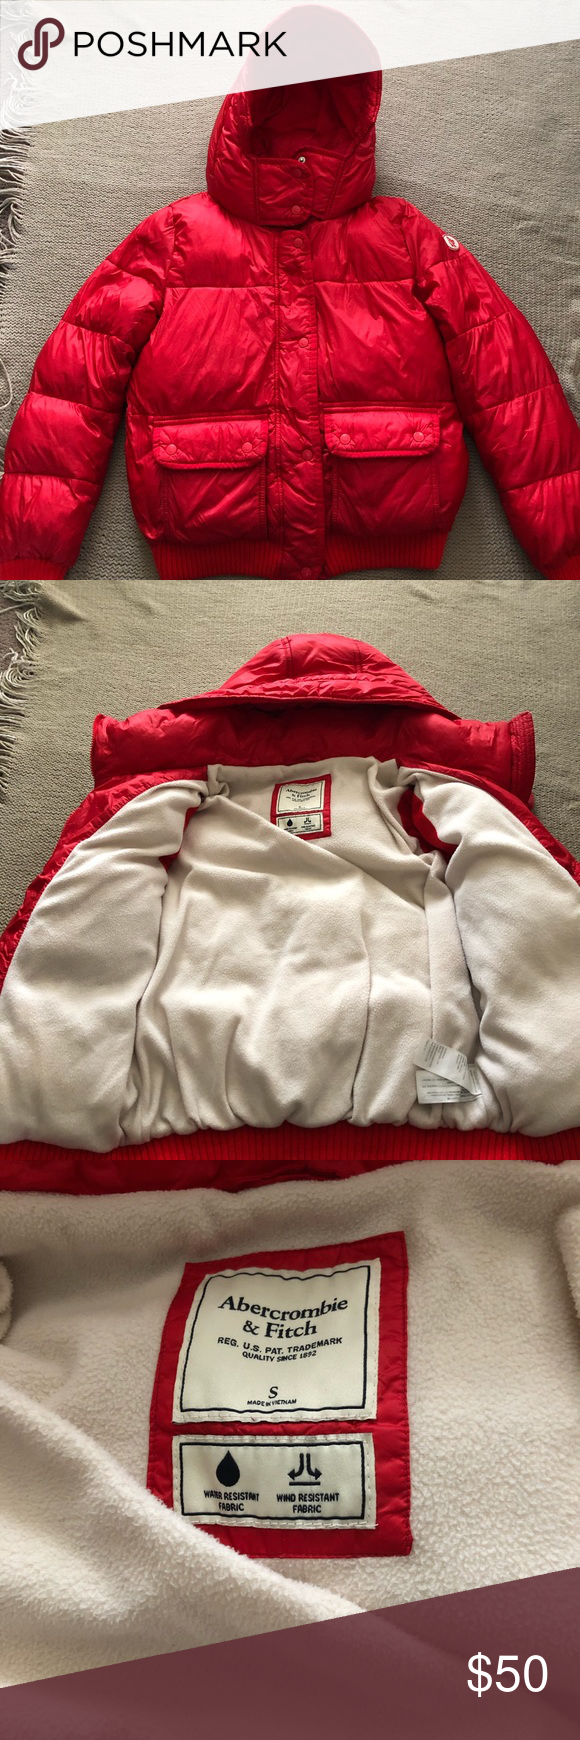 Abercrombie Fitch Puffer Jacket Red Puffer Jacket Women S Puffer Coats Red Puffer Coat [ 1740 x 580 Pixel ]